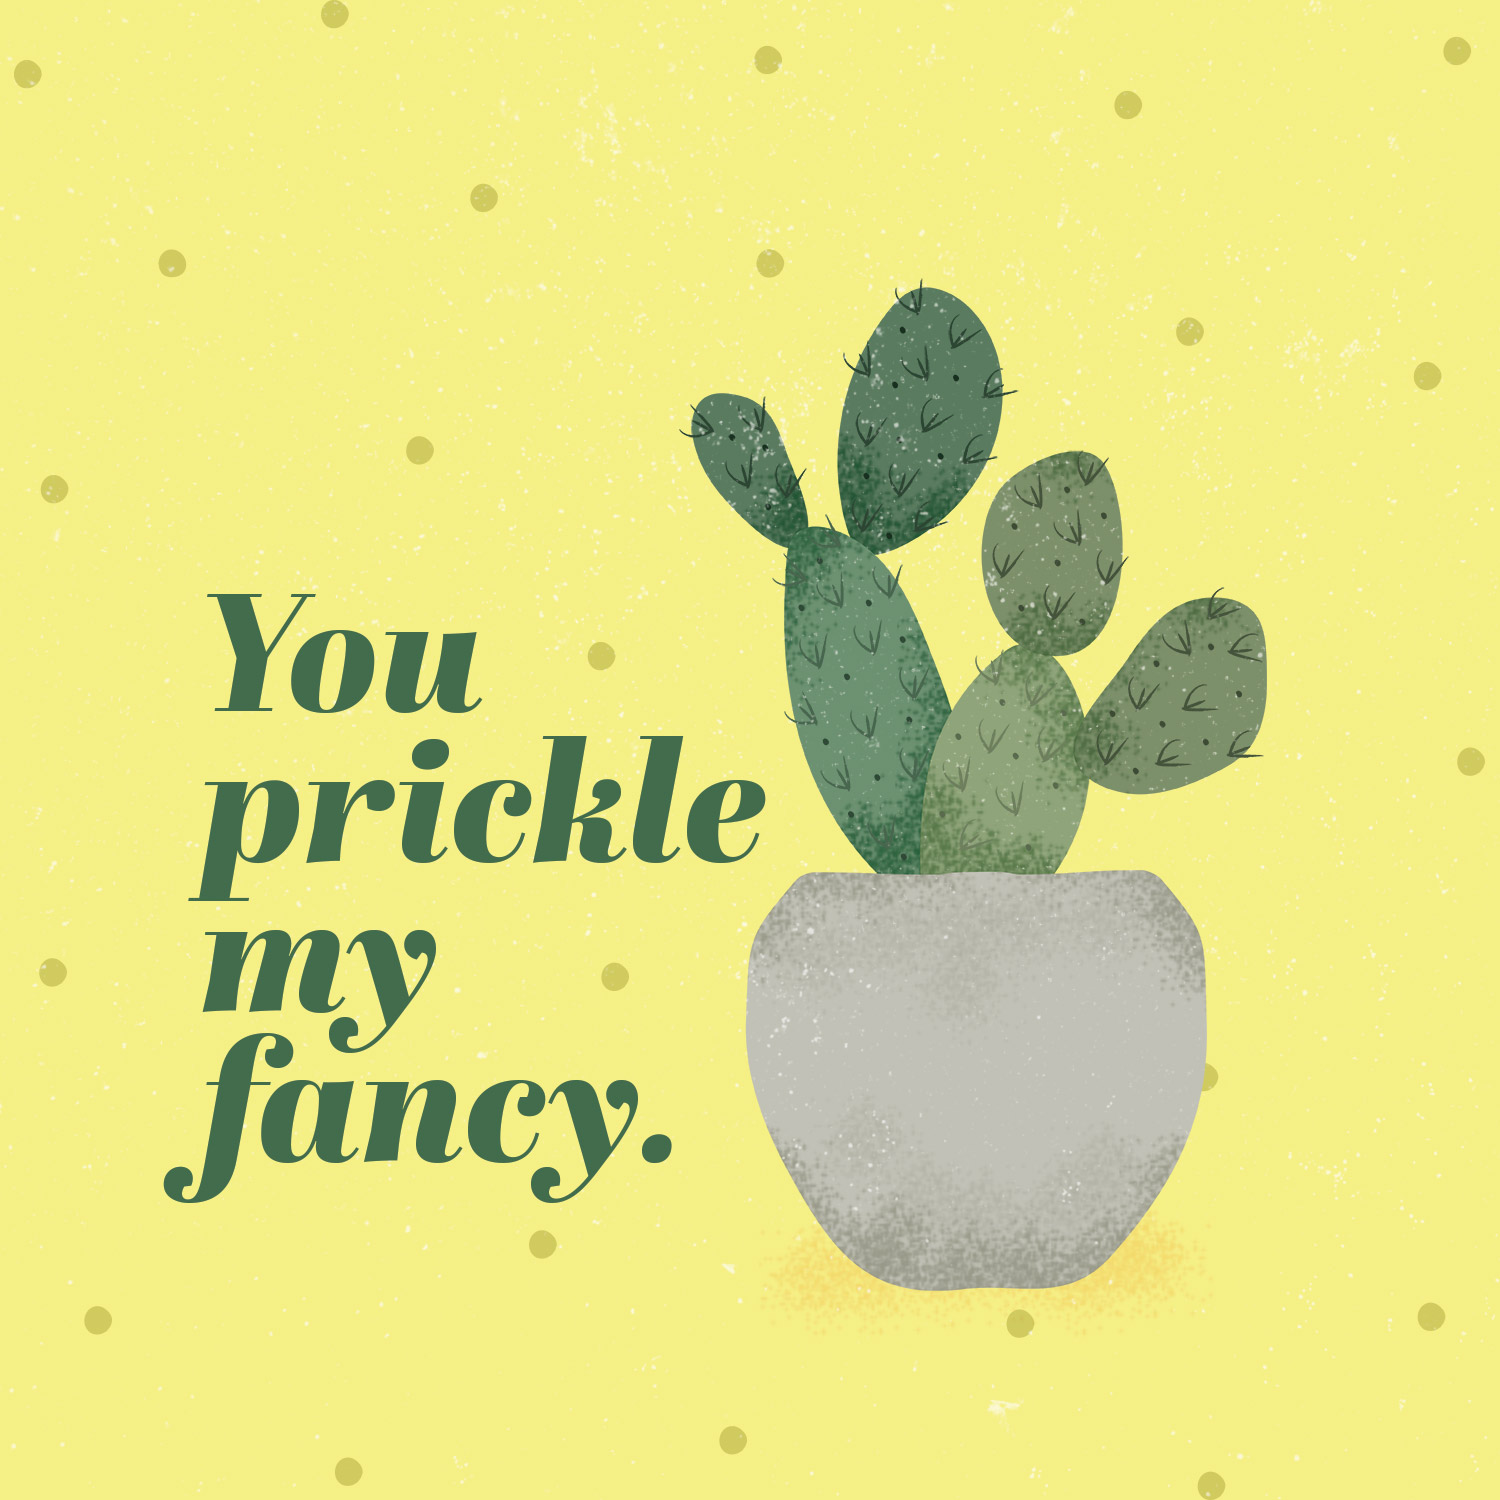 cactus puns you prickle my fancy